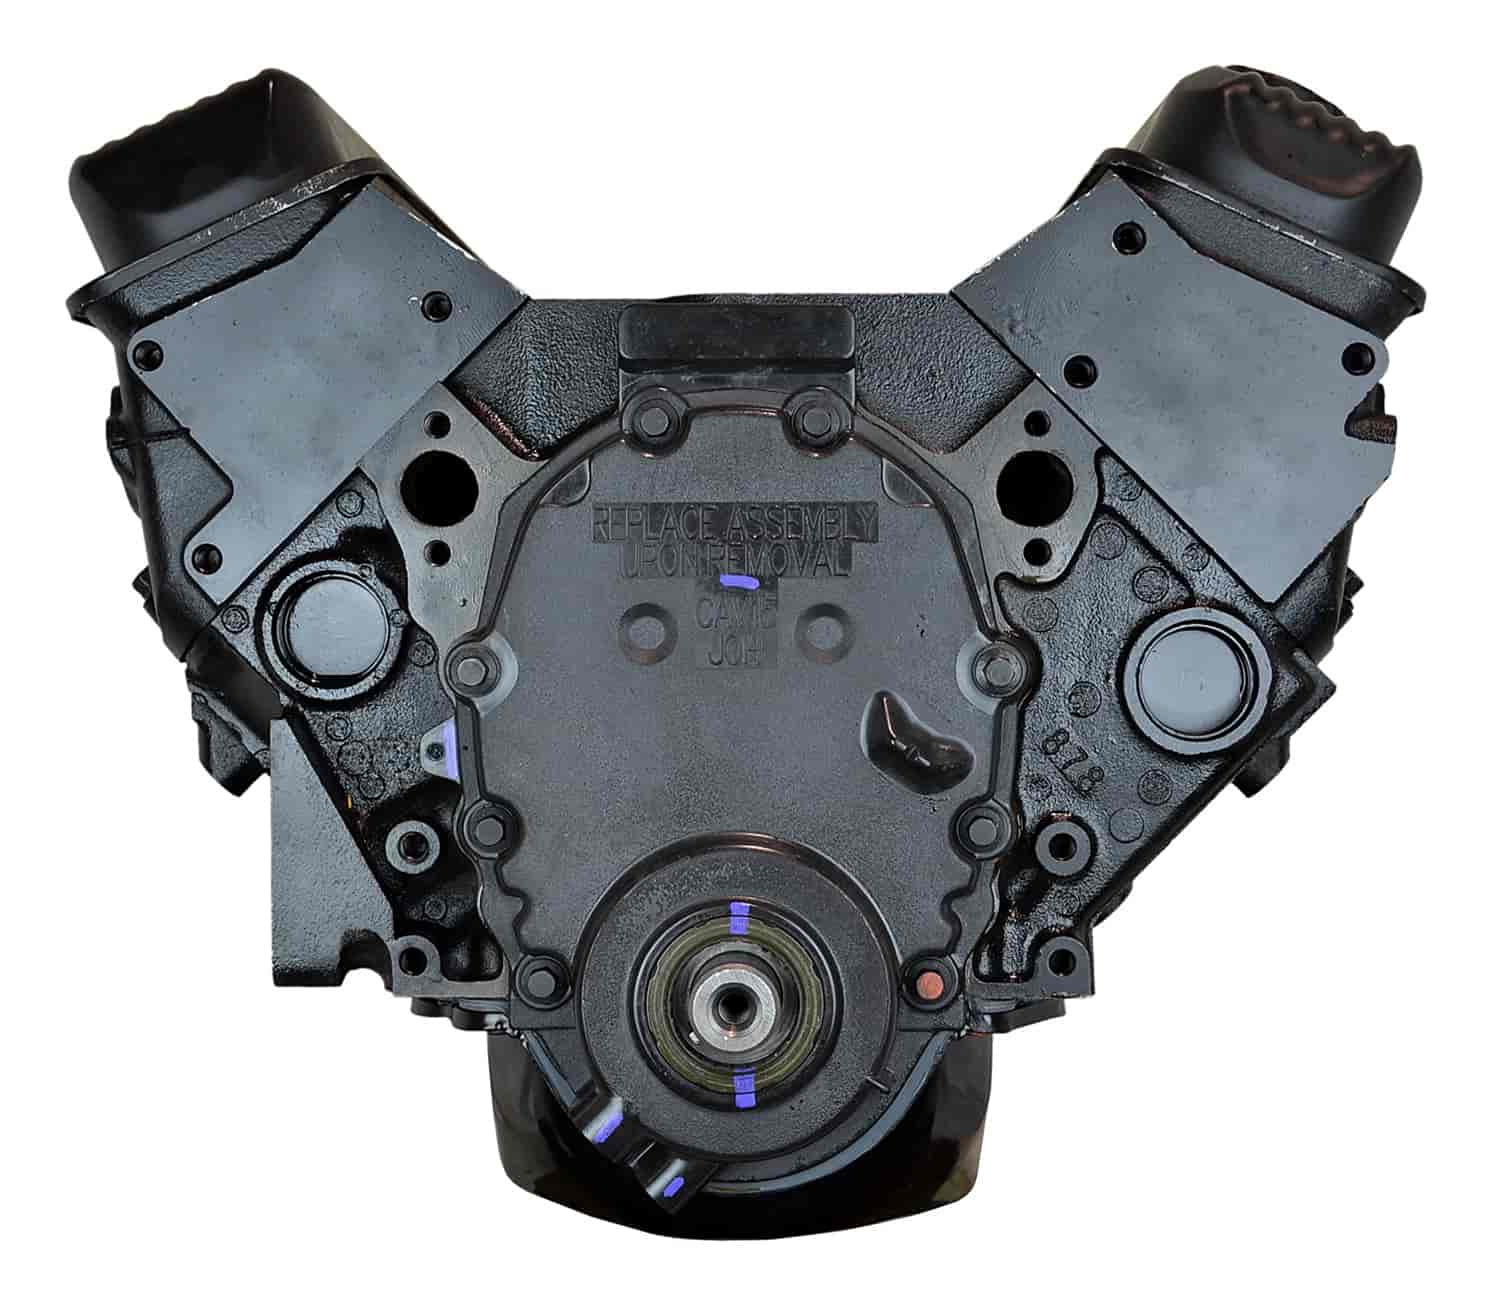 Chevy Tracker 2000 Remanufactured Complete: ATK Engines VCFA Remanufactured Crate Engine 2000-2002